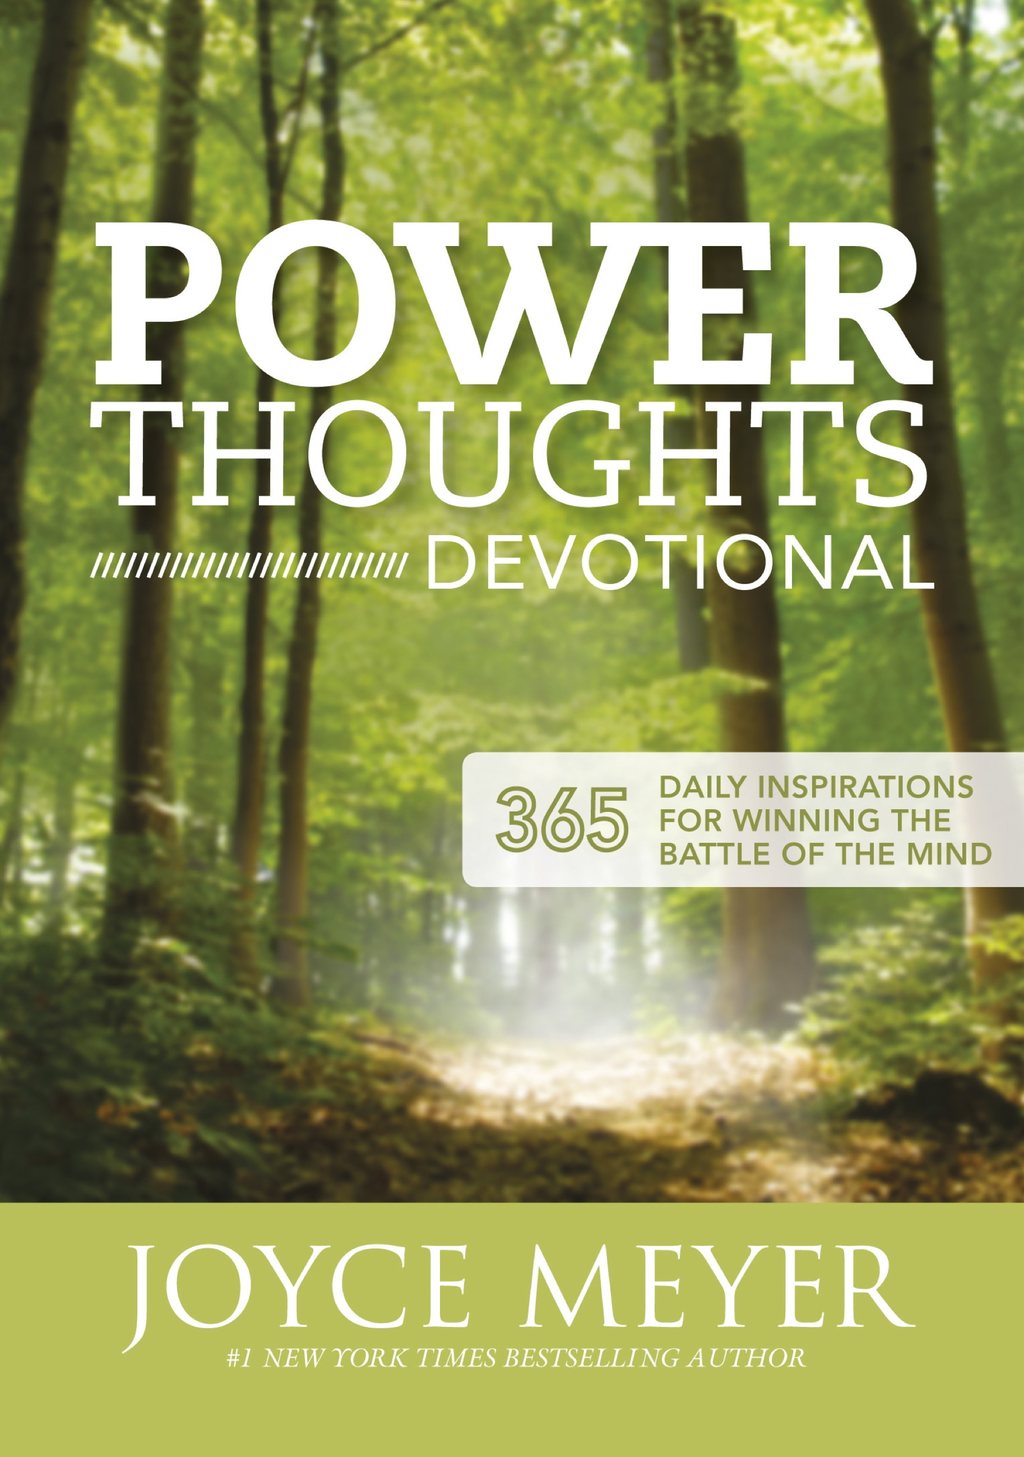 Power Thoughts Devotional 365 daily inspirations for winning the battle of your mind